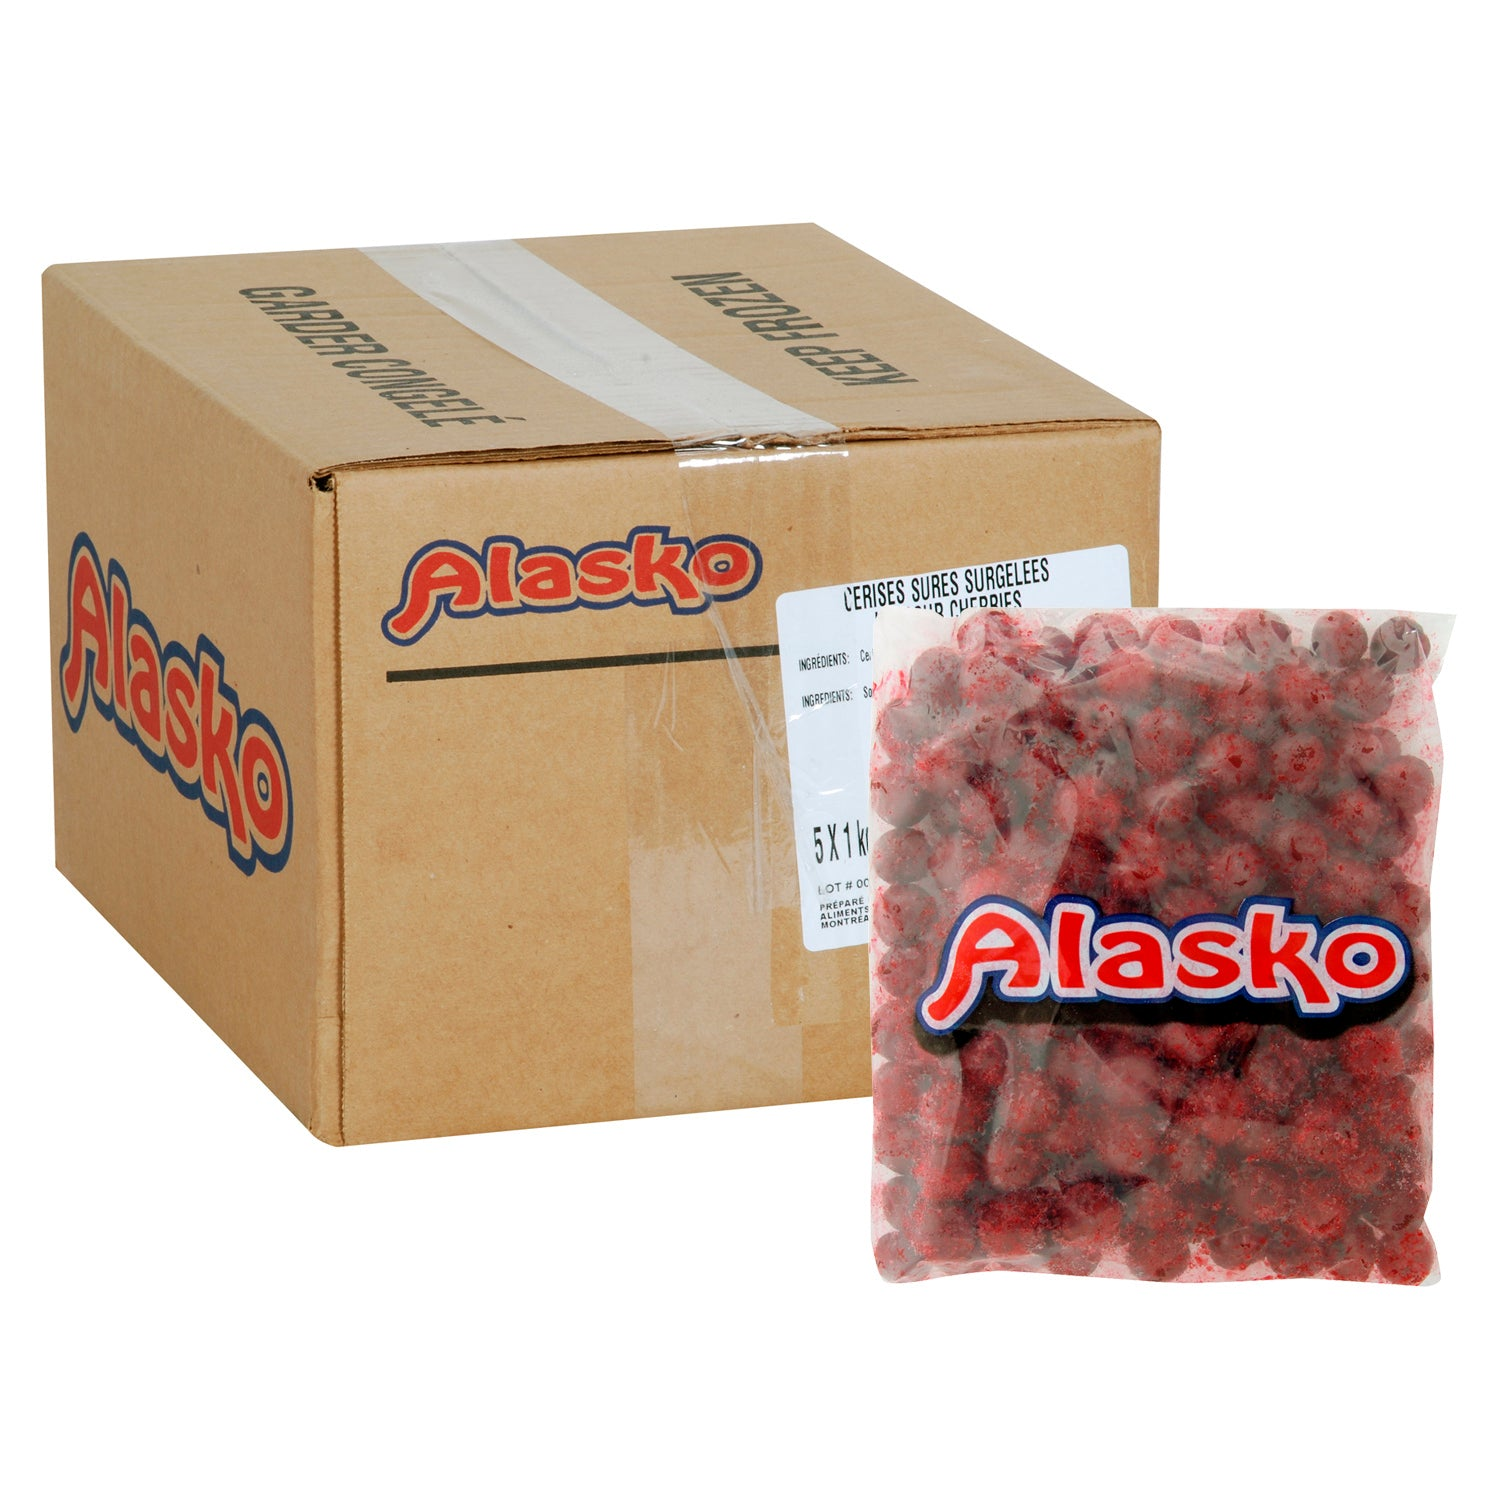 Alasko Individually Quick Frozen Sour Cherries 1 kg - 5 Pack [$6.30/kg]